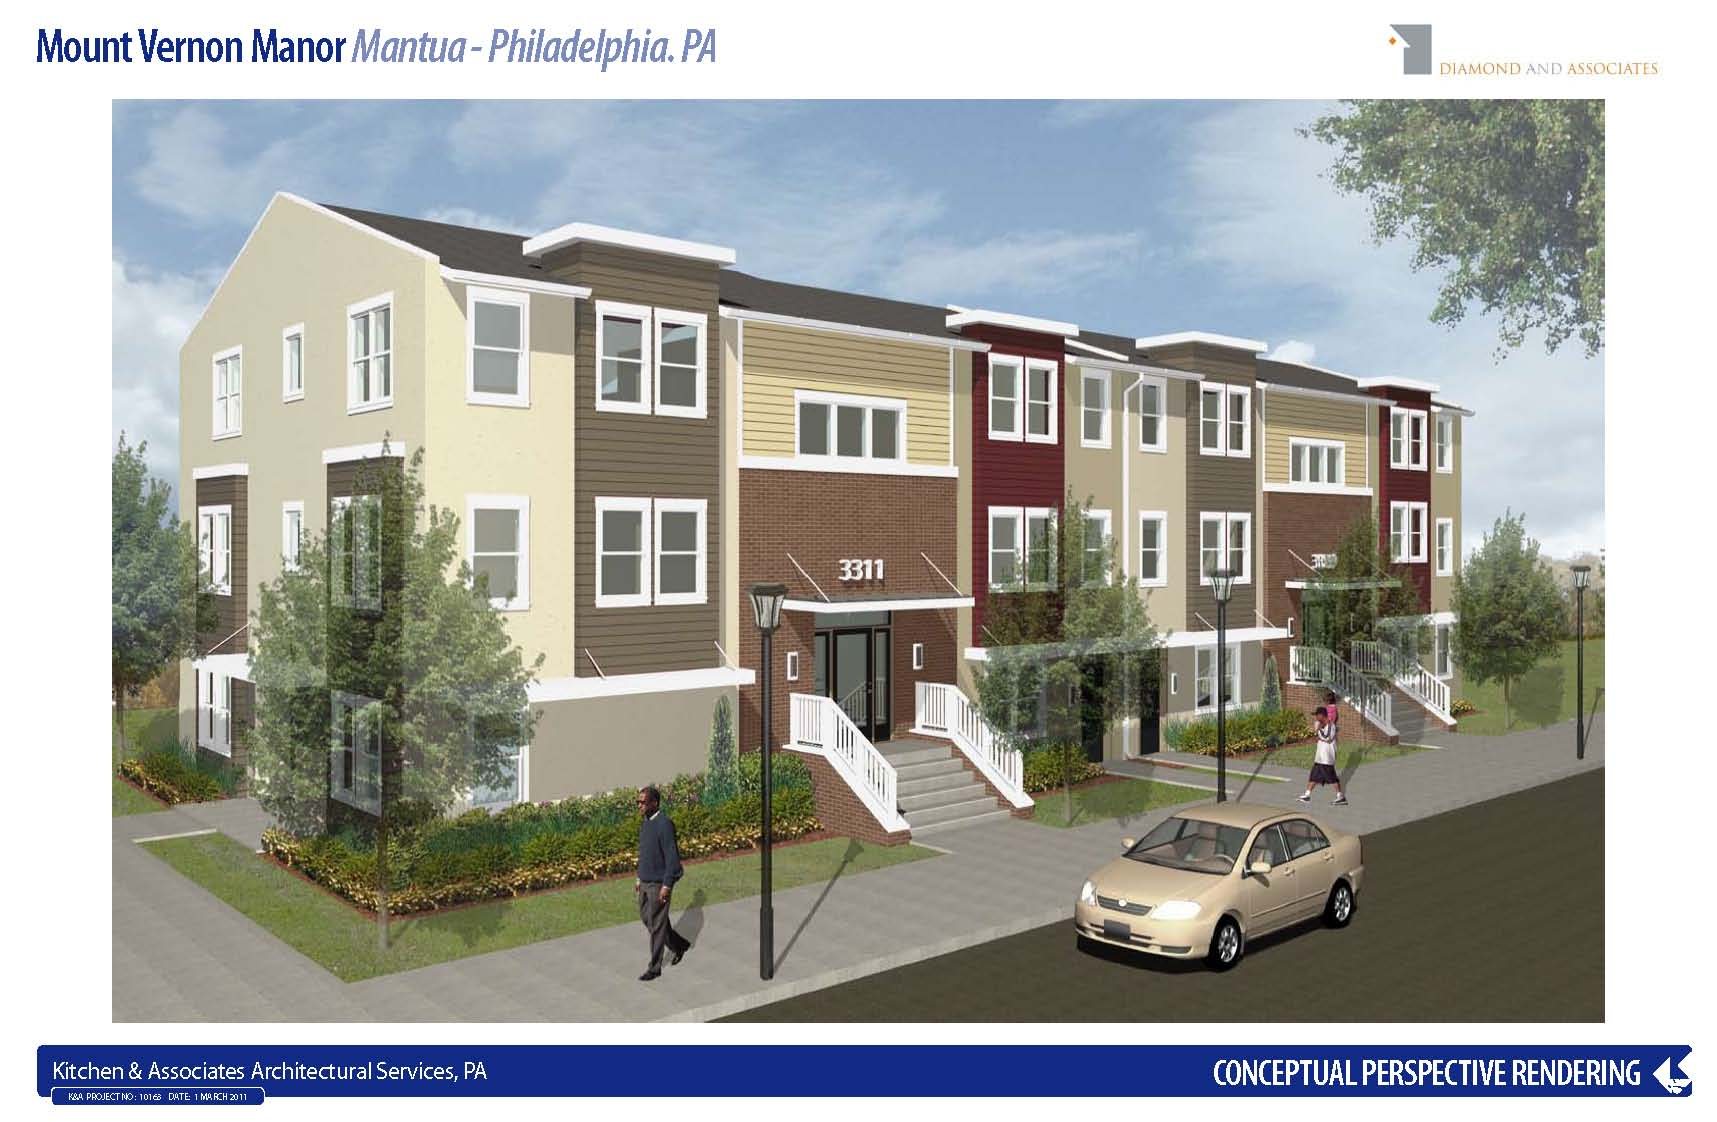 More redevelopment in mantua philadelphiaheights for 8 unit apartment plans